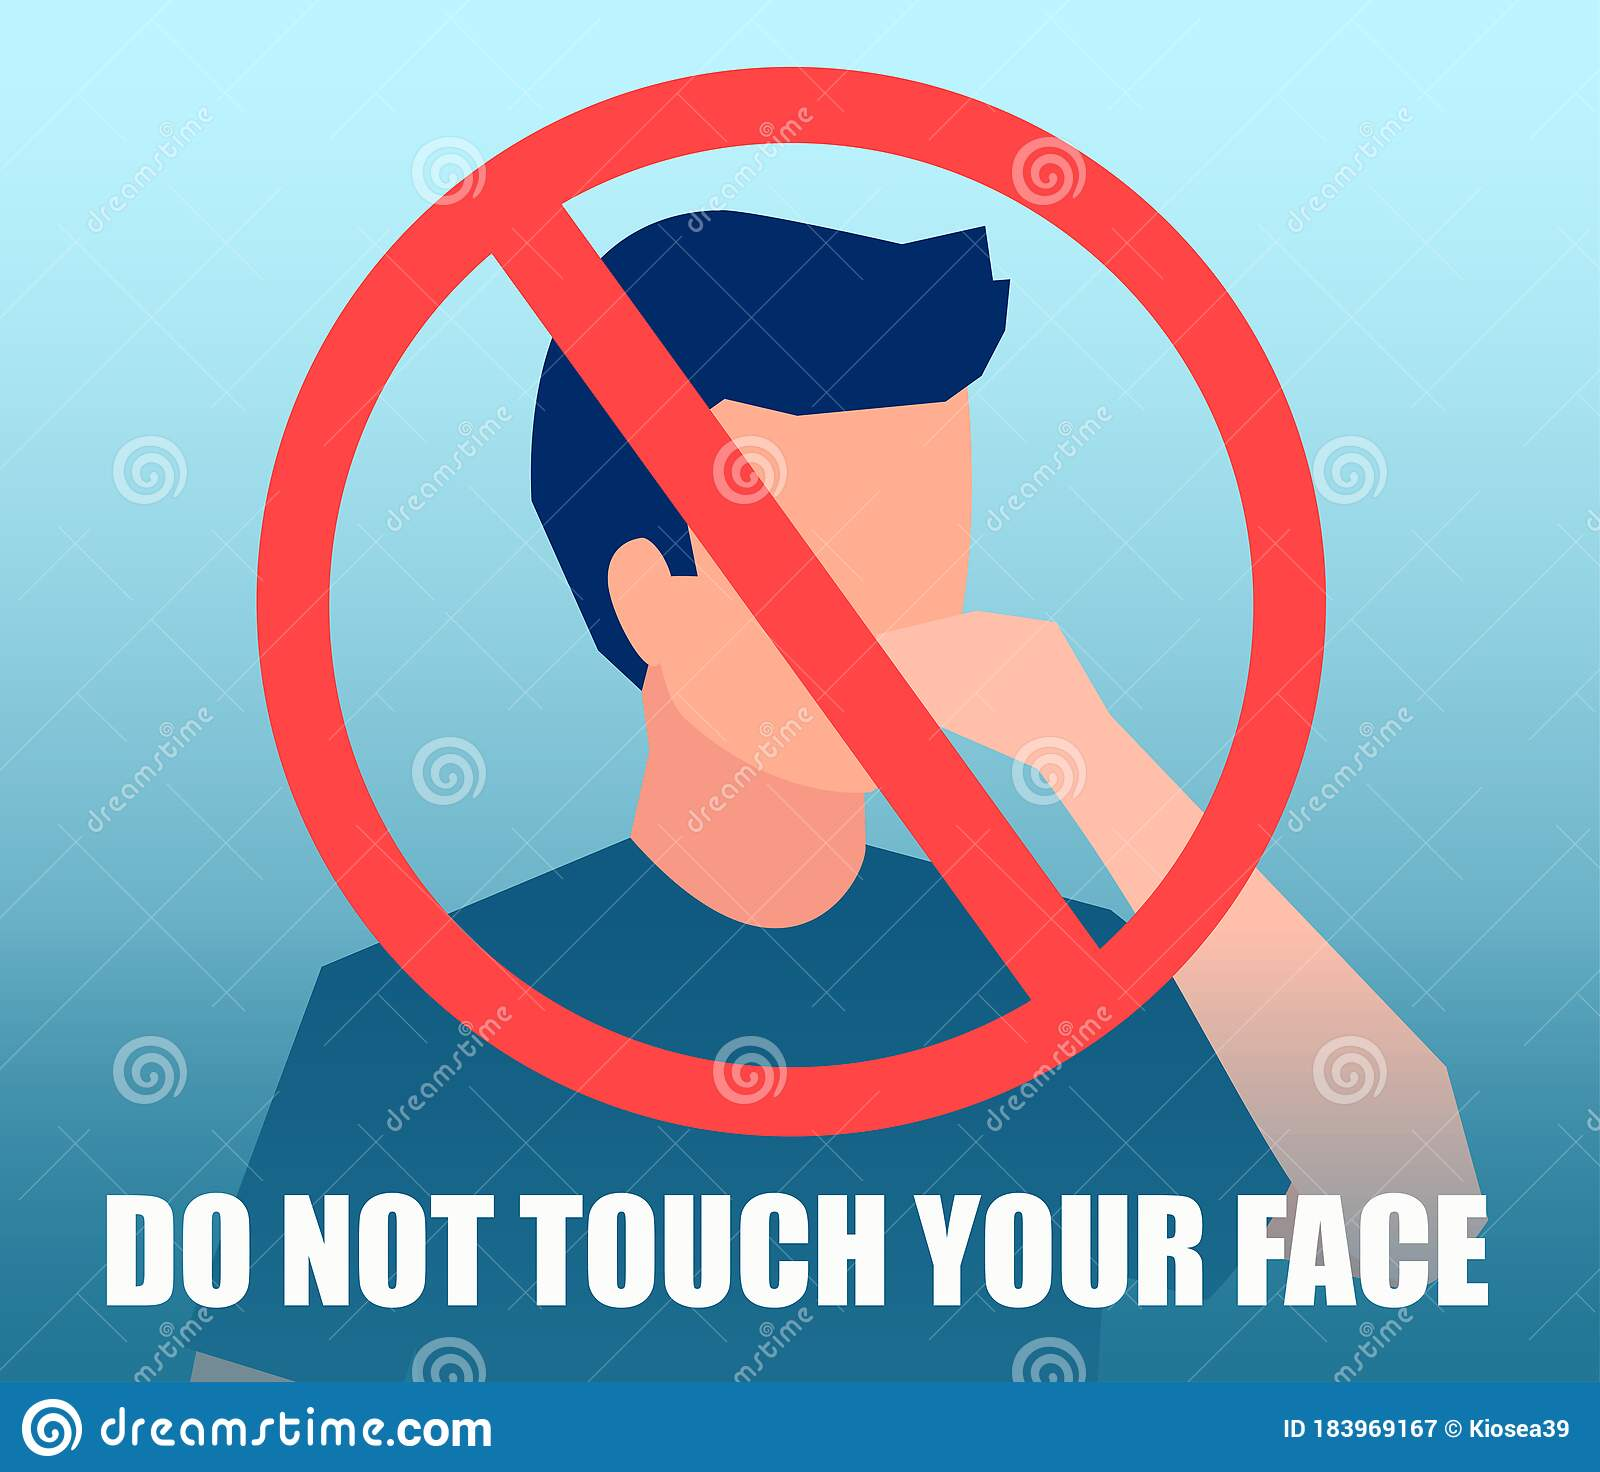 Vector Of A Man Touching His Face With Hand And Alert Sign